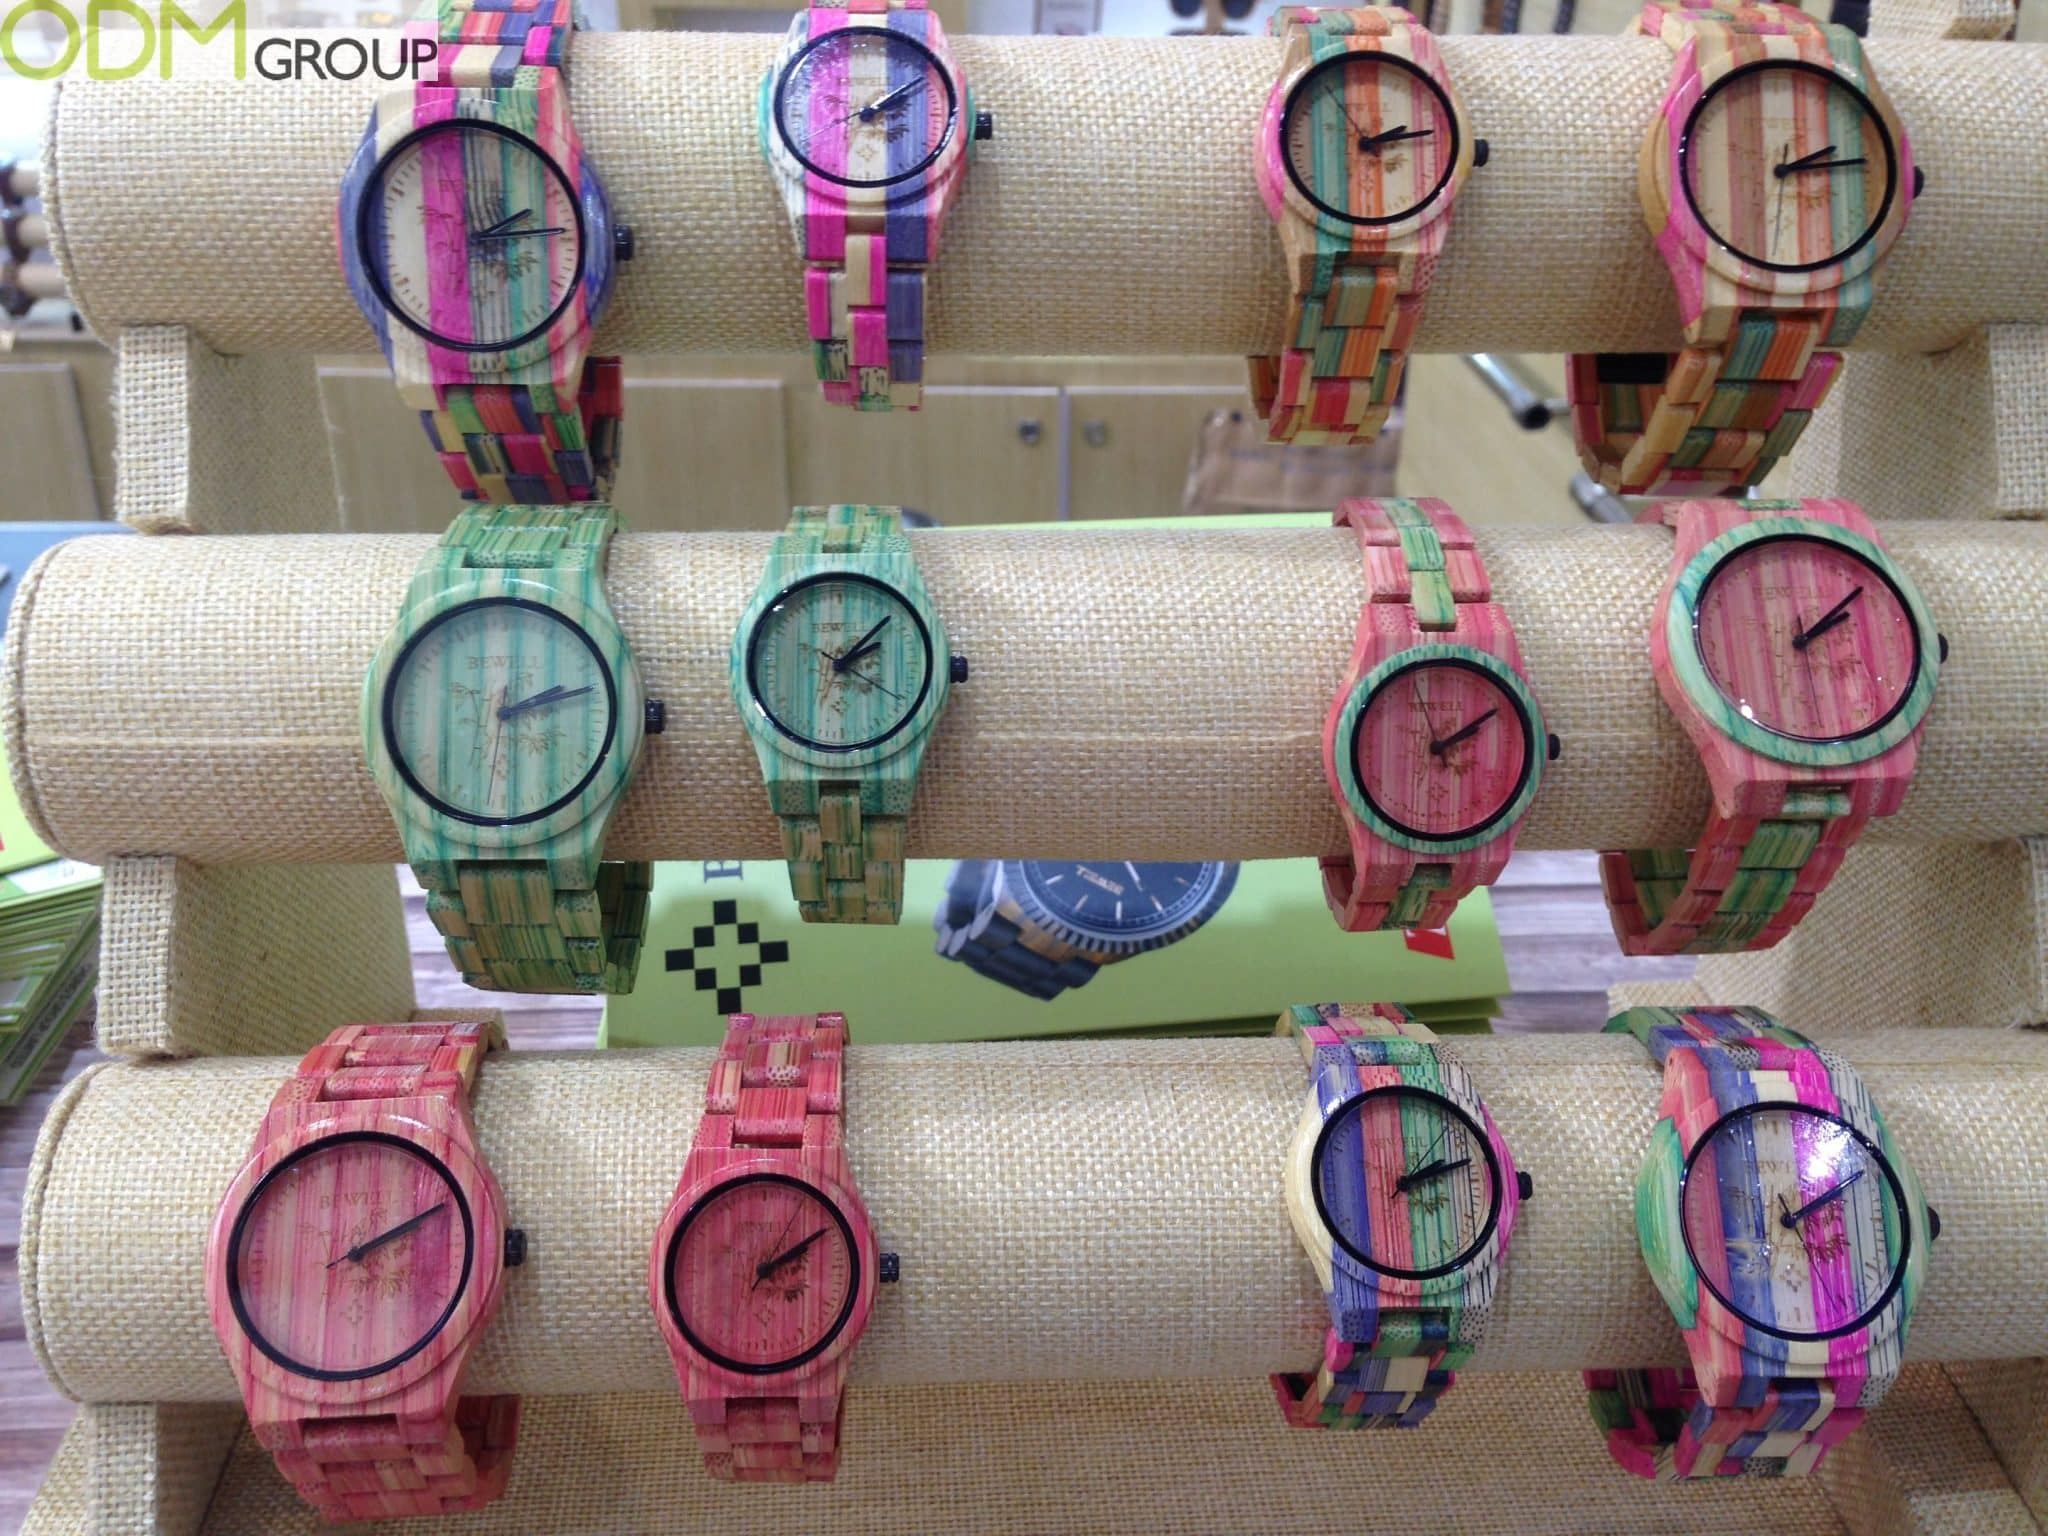 Promotional Bamboo Products - Stylish Wrist Watches